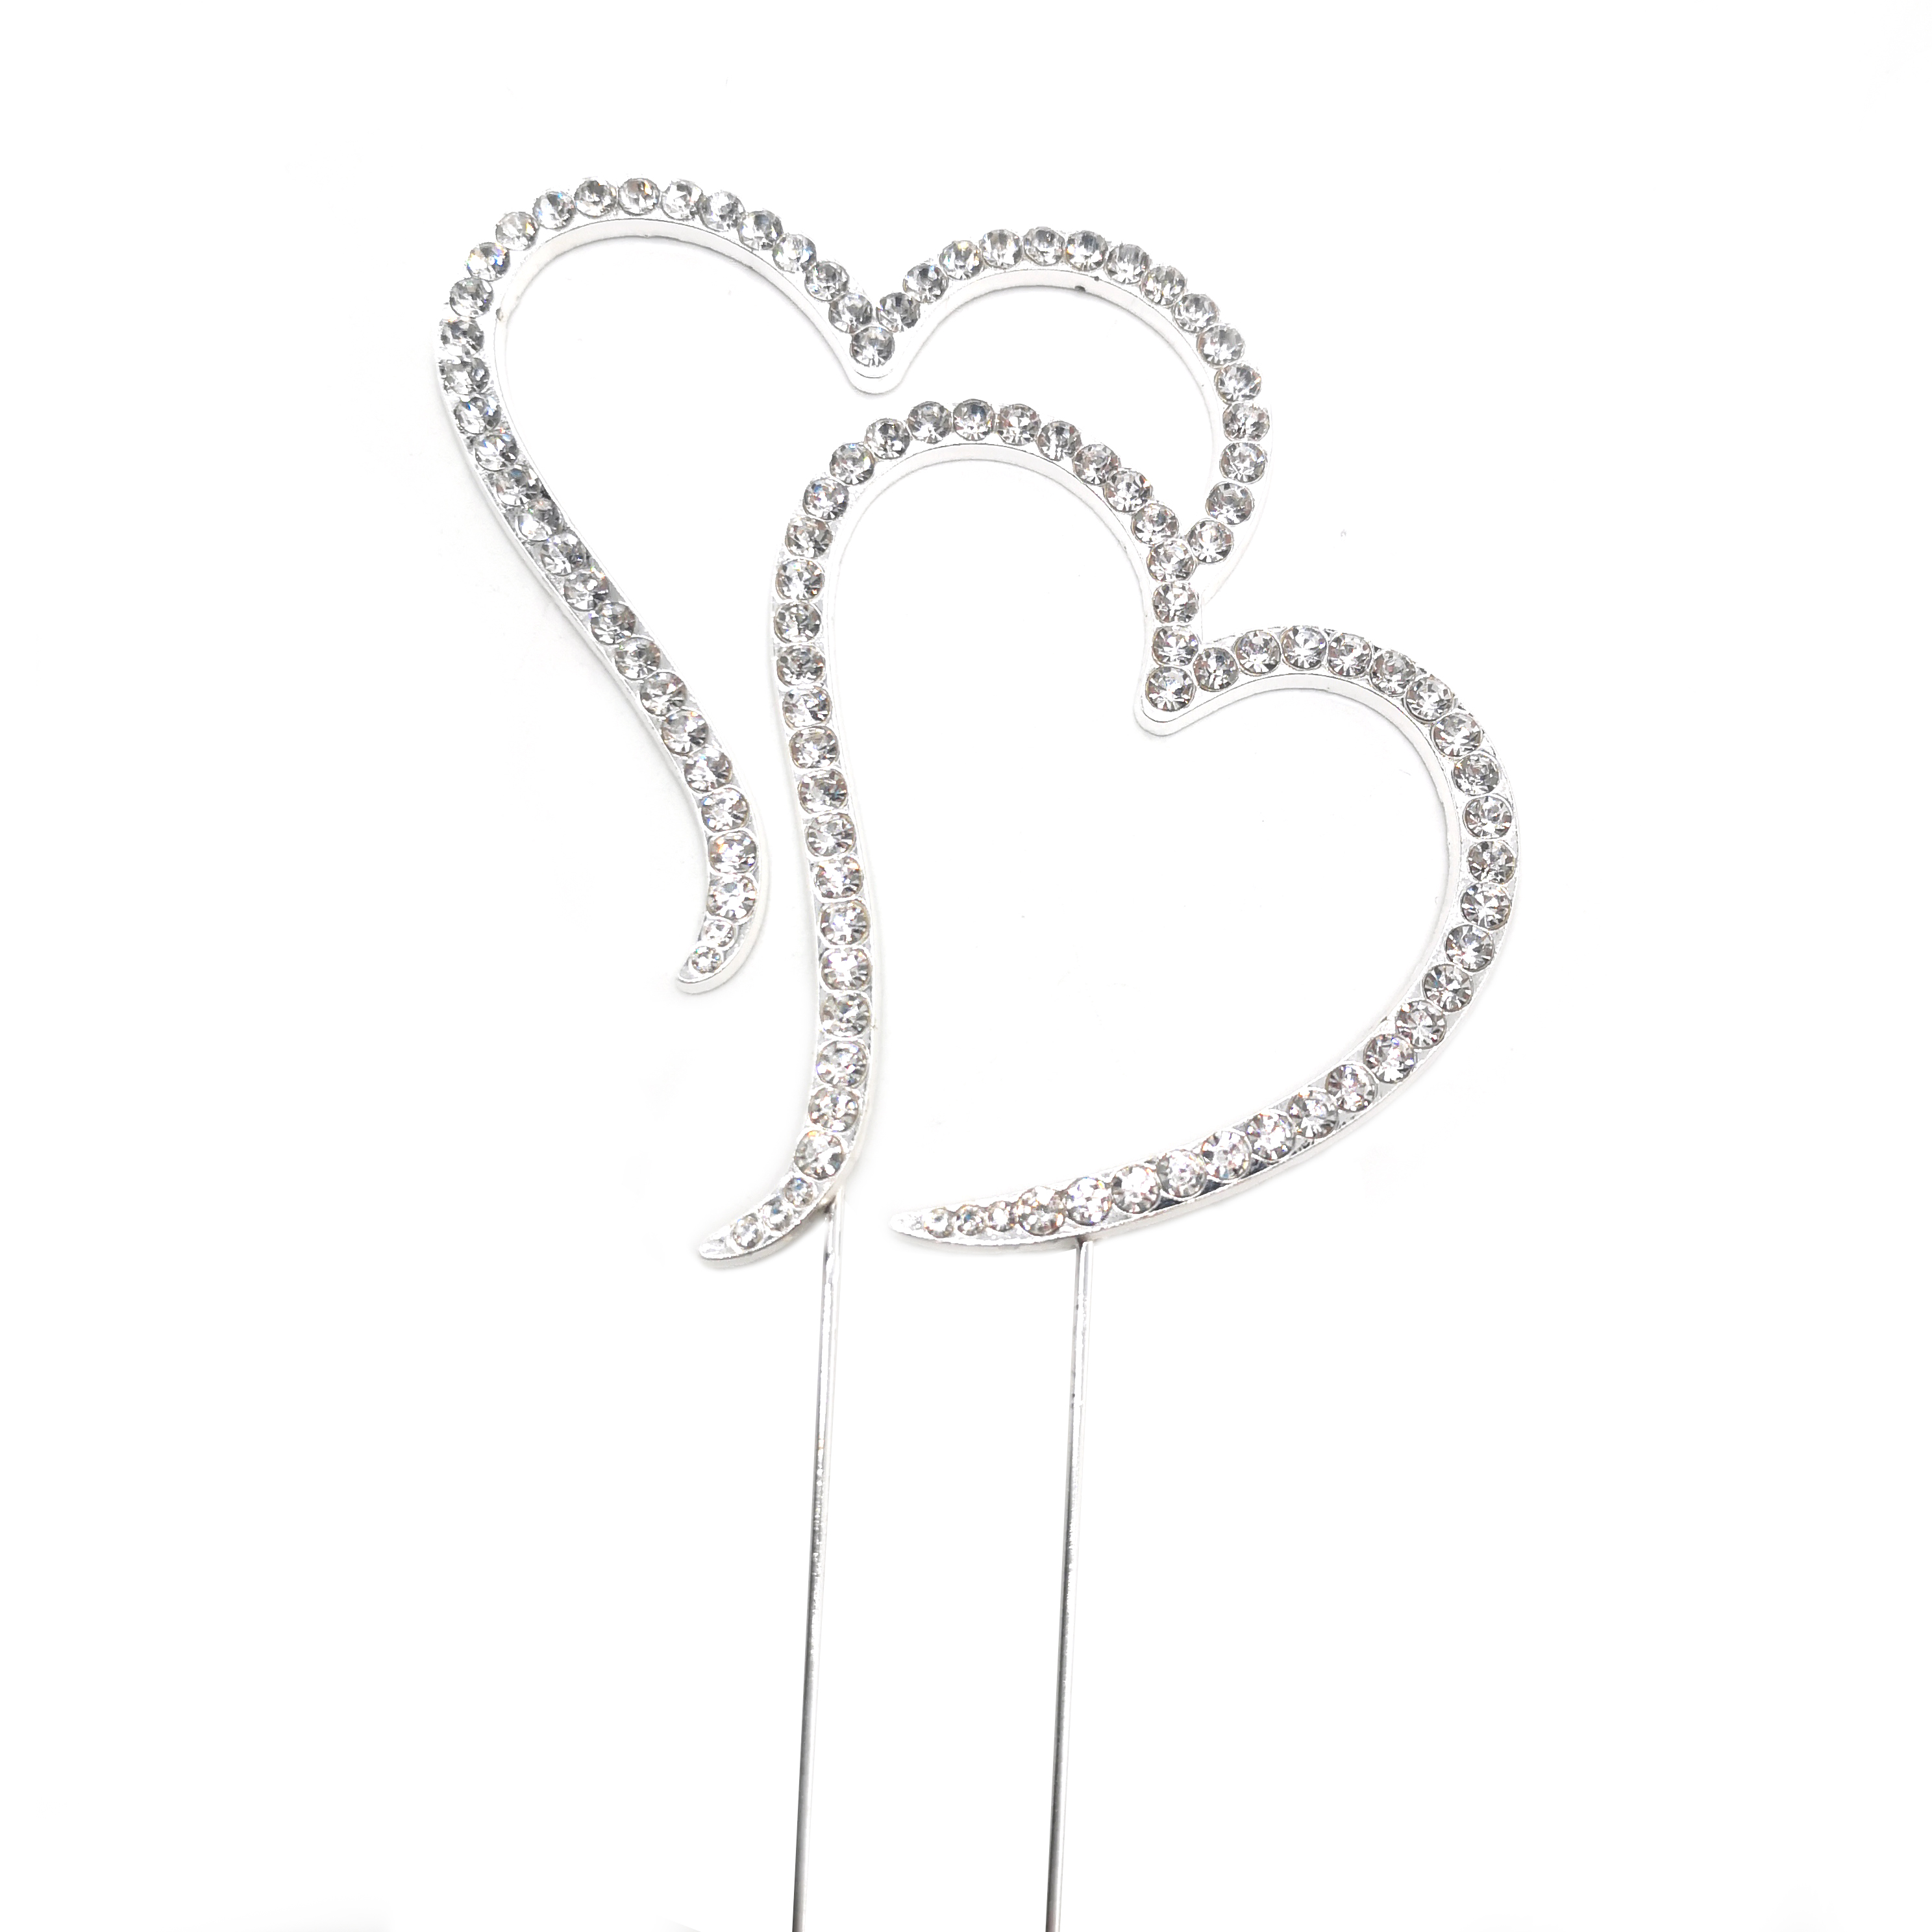 Sparkling Rhinestone Crystal Double Love Heart <strong>Cake</strong> Decoration <strong>Cake</strong> Topper <strong>Wedding</strong> Party Anniversary <strong>Cake</strong> decor <strong>Accessories</strong>